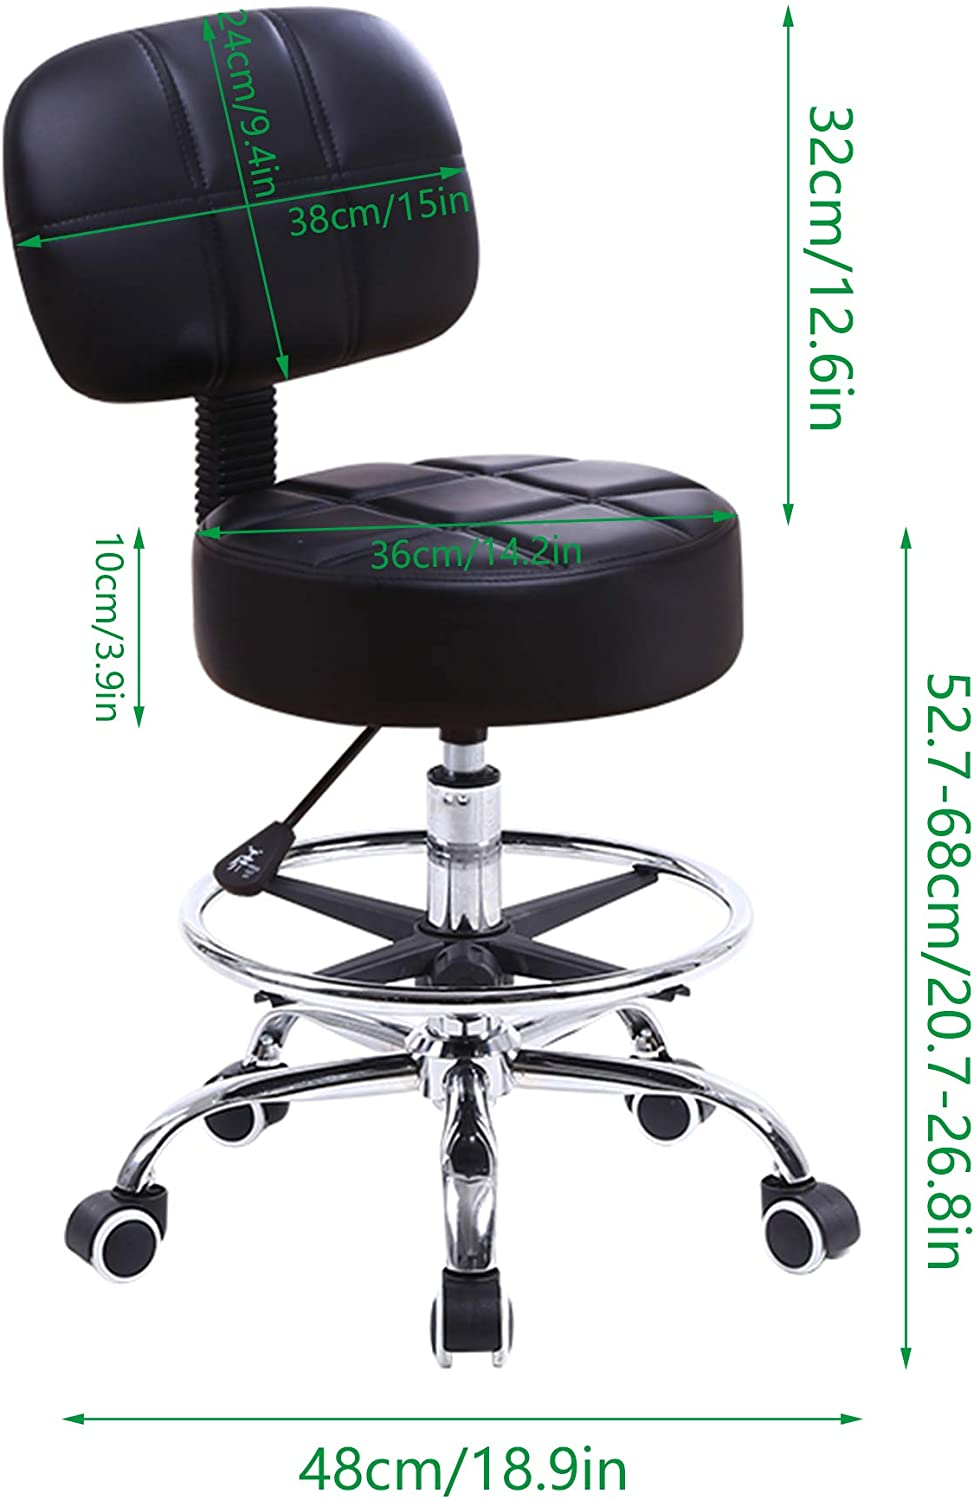 Kktoner Swivel Round Rolling Stool Pu Leather With Adjustable Foot Rest Height Adjustable Task Work Drafting Chair With Back Walmart Com Walmart Com